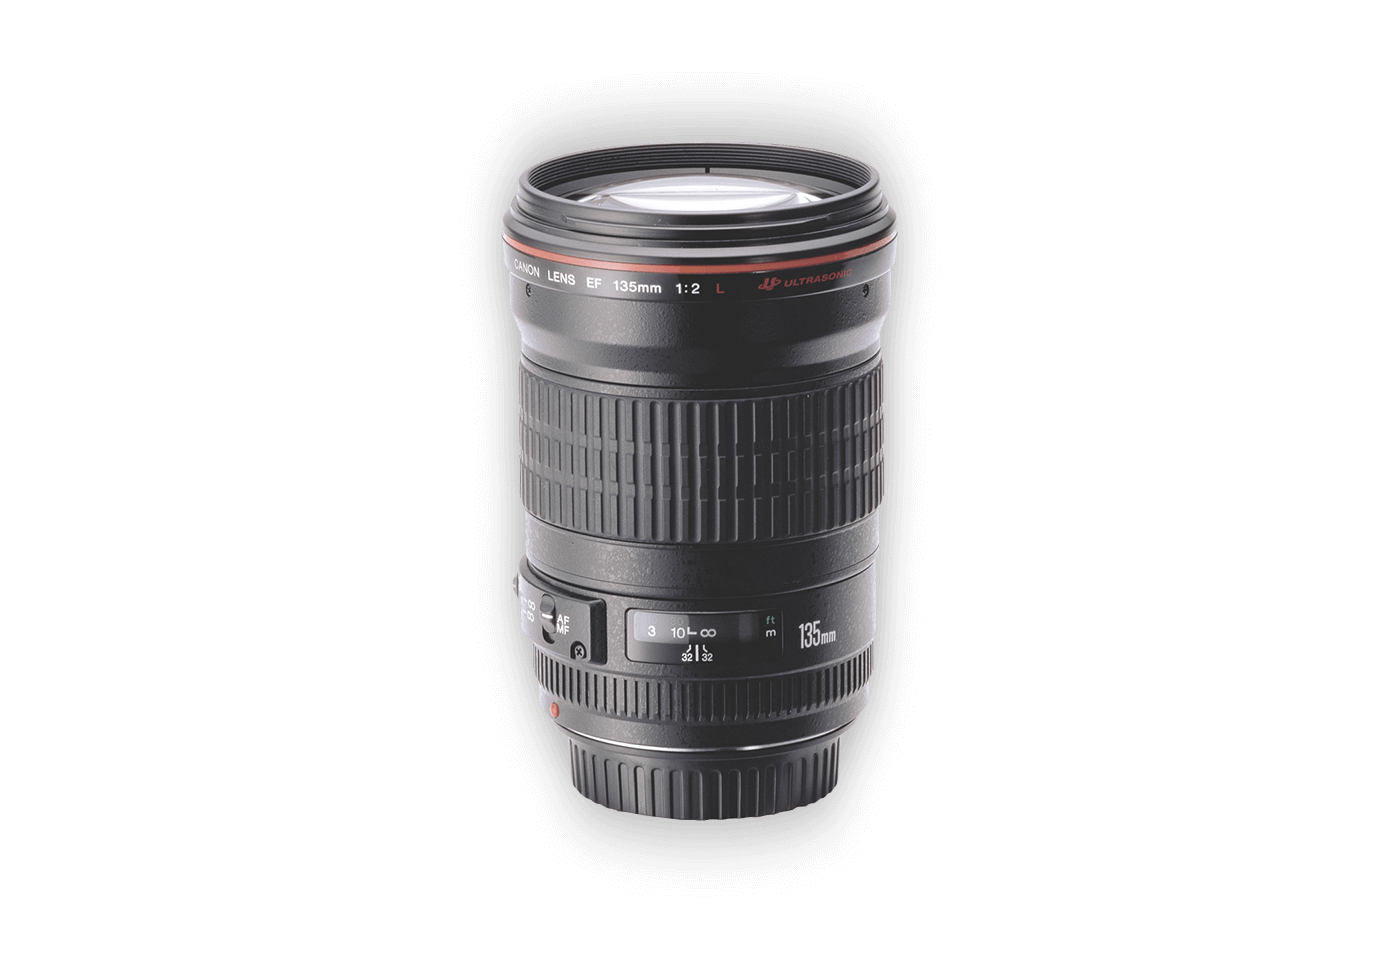 Side view of Canon EF 135mm f/2L USM lens